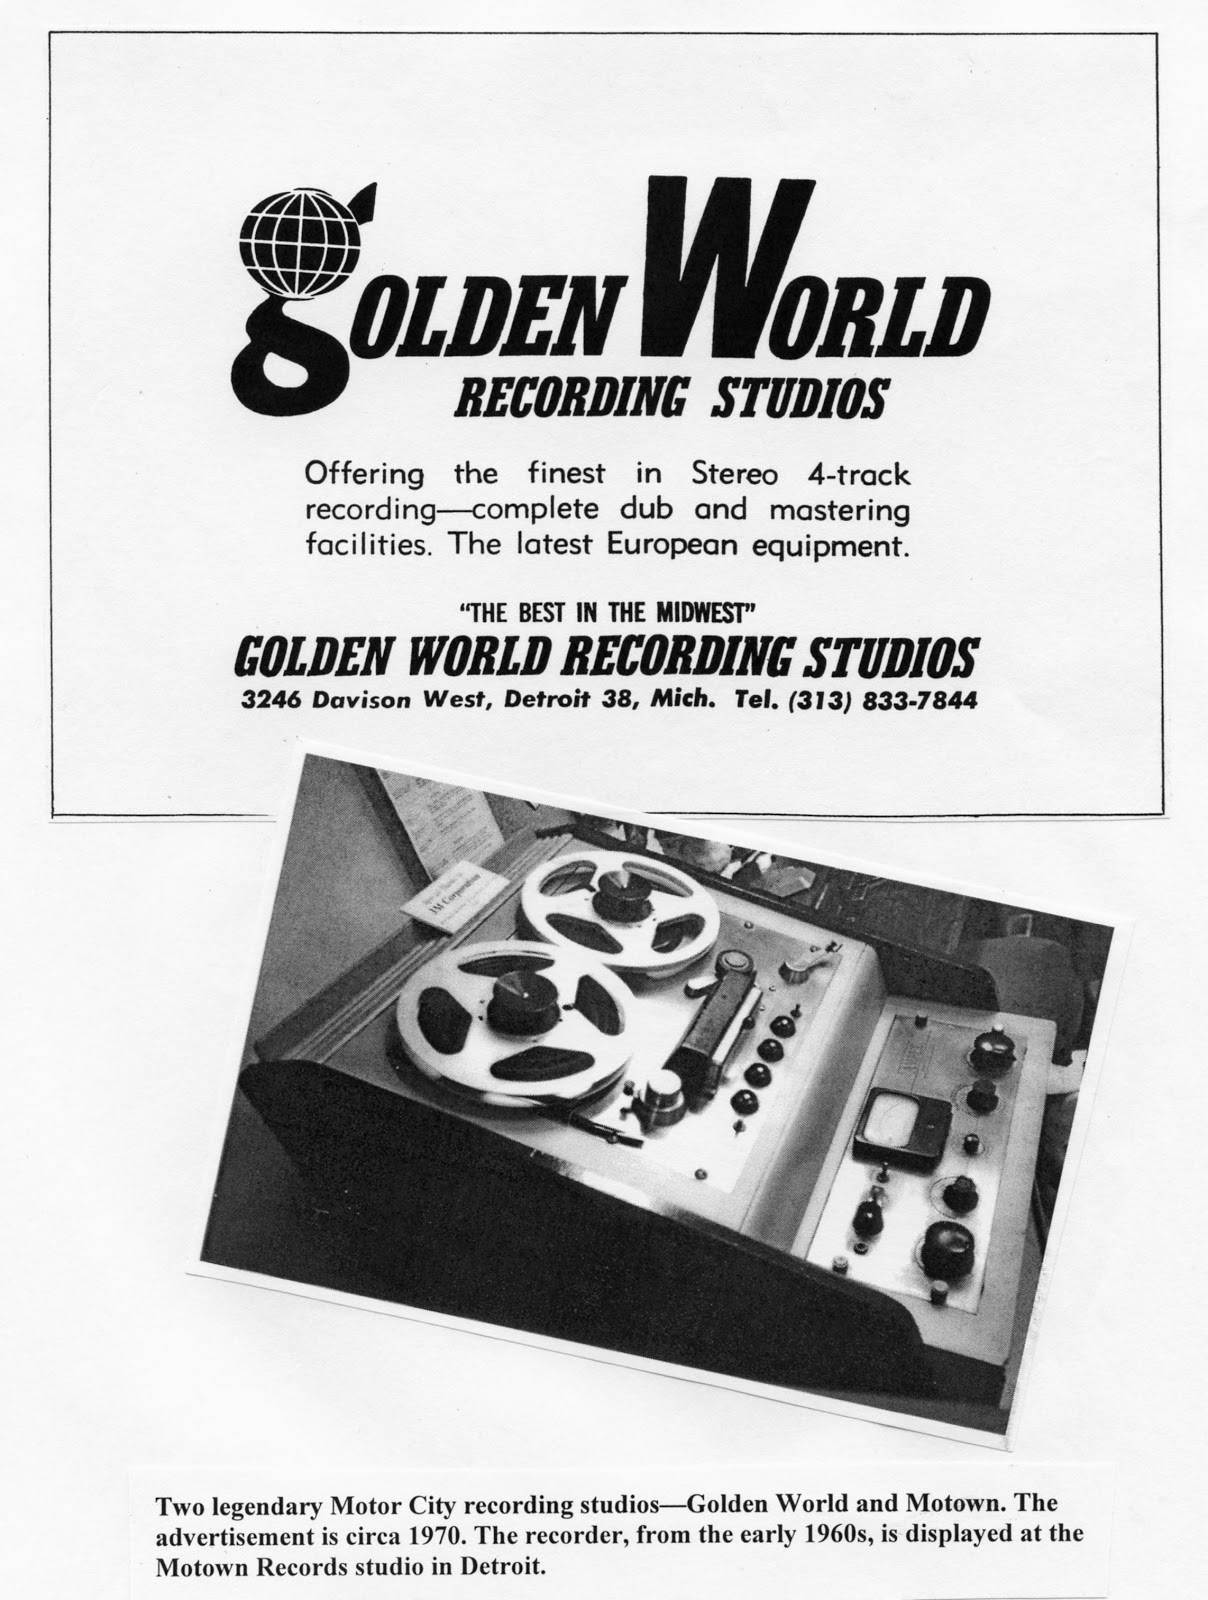 """The label and its subsidiaries were purchased by Berry Gordy in 1966, and folded into Gordy's Motown Record Corporation. The Golden World studio became Motown's """"Studio B"""", working in support of the original Motown recording studio (Studio A) at Hitsville USA. Before its purchase by Gordy, the studio's recordings often included moonlighting Motown back-up musicians, including James Jamerson on bass and George McGregor, who was the studio percussionist."""